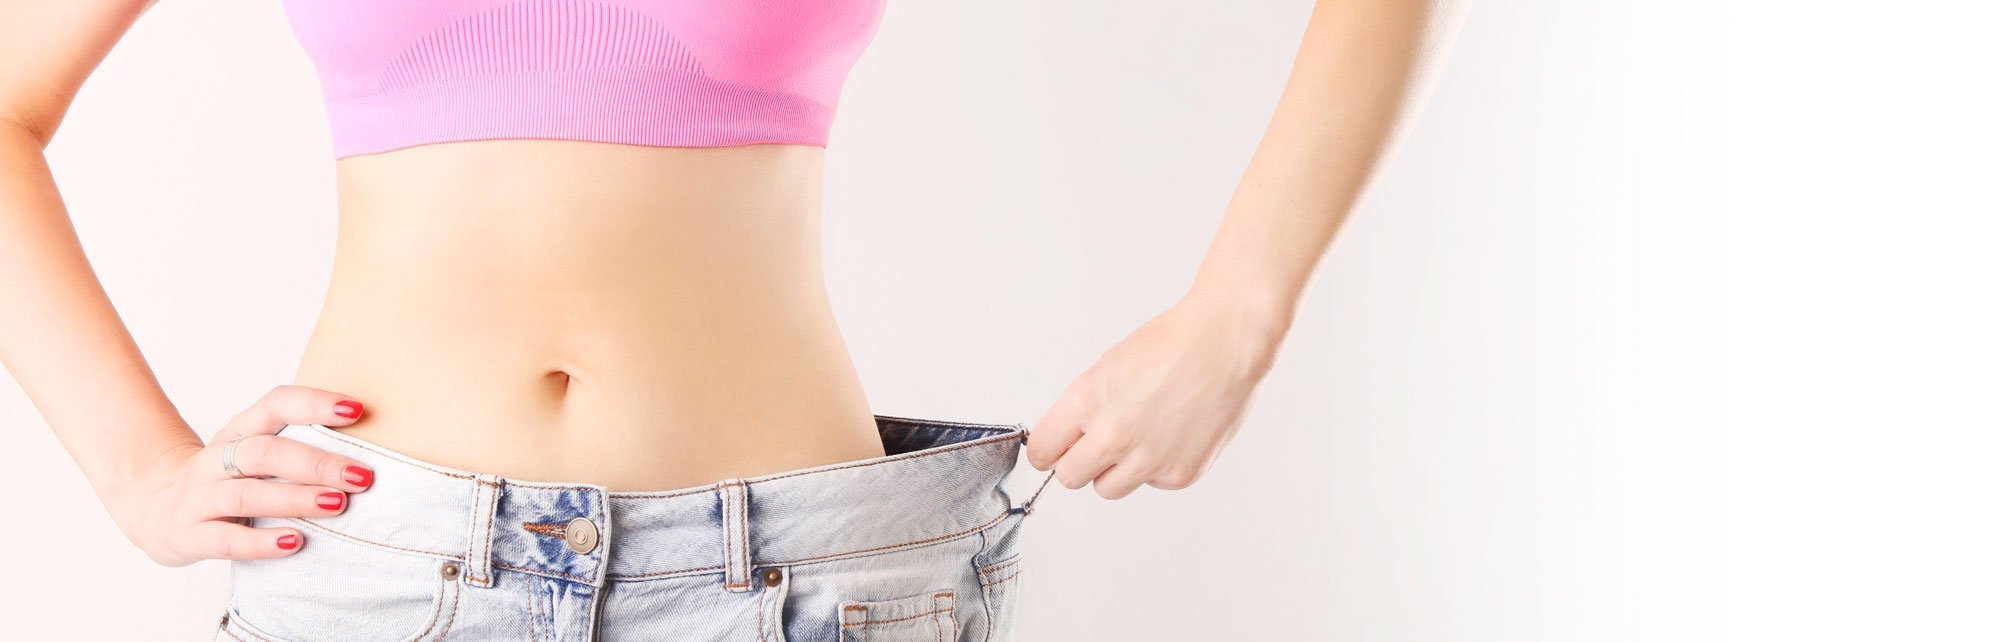 laser weight loss